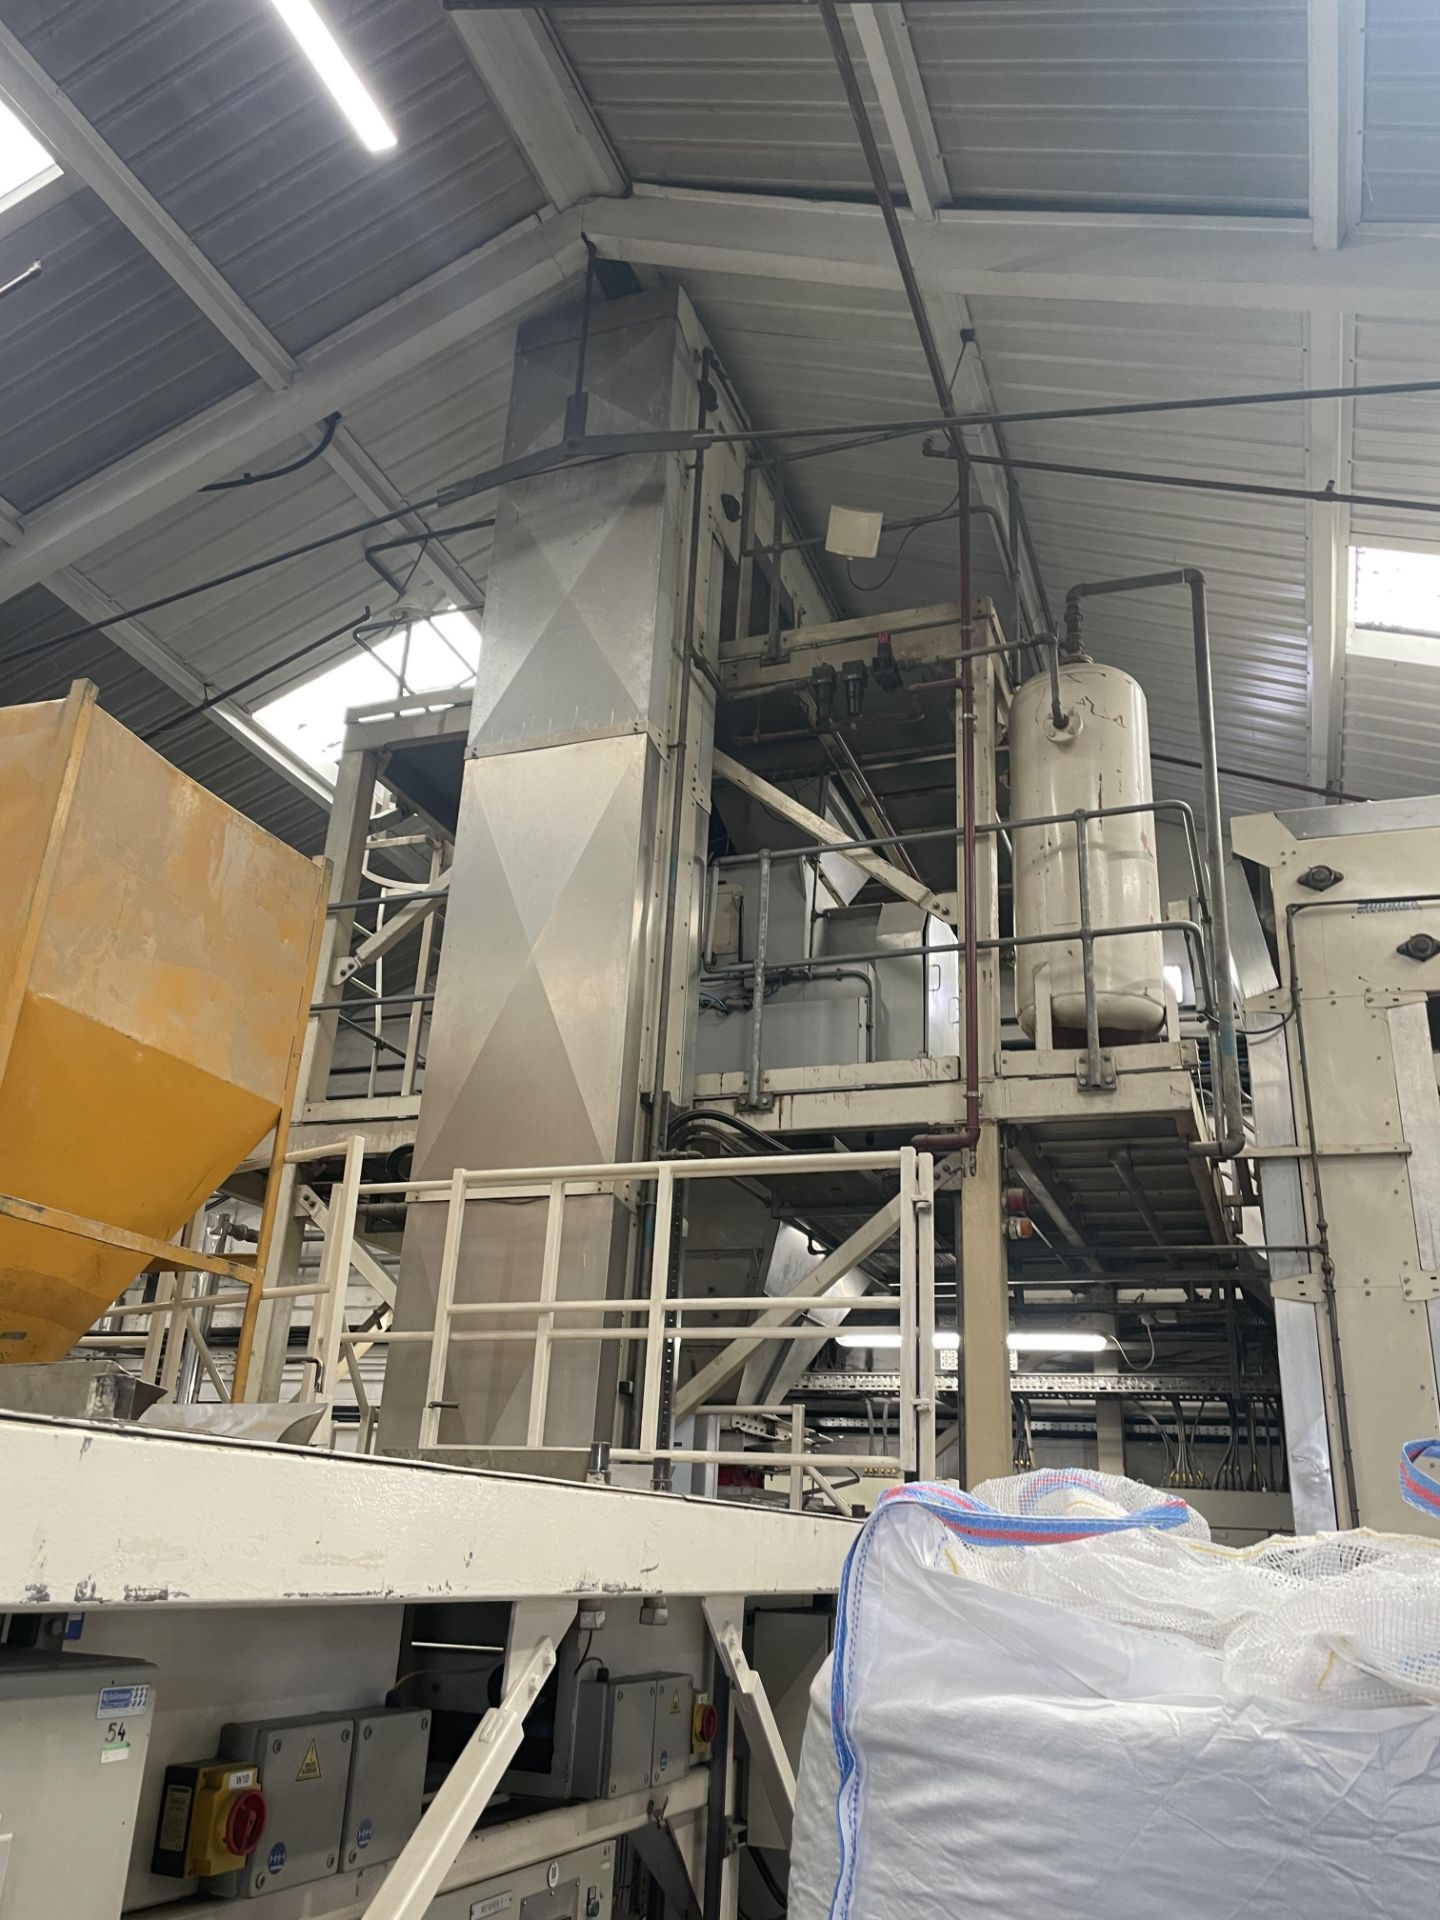 Pet Food Blending Line c/w Wynveen PM 750LH Stainless Steel Double Shaft Paddle Mixer - Image 63 of 63